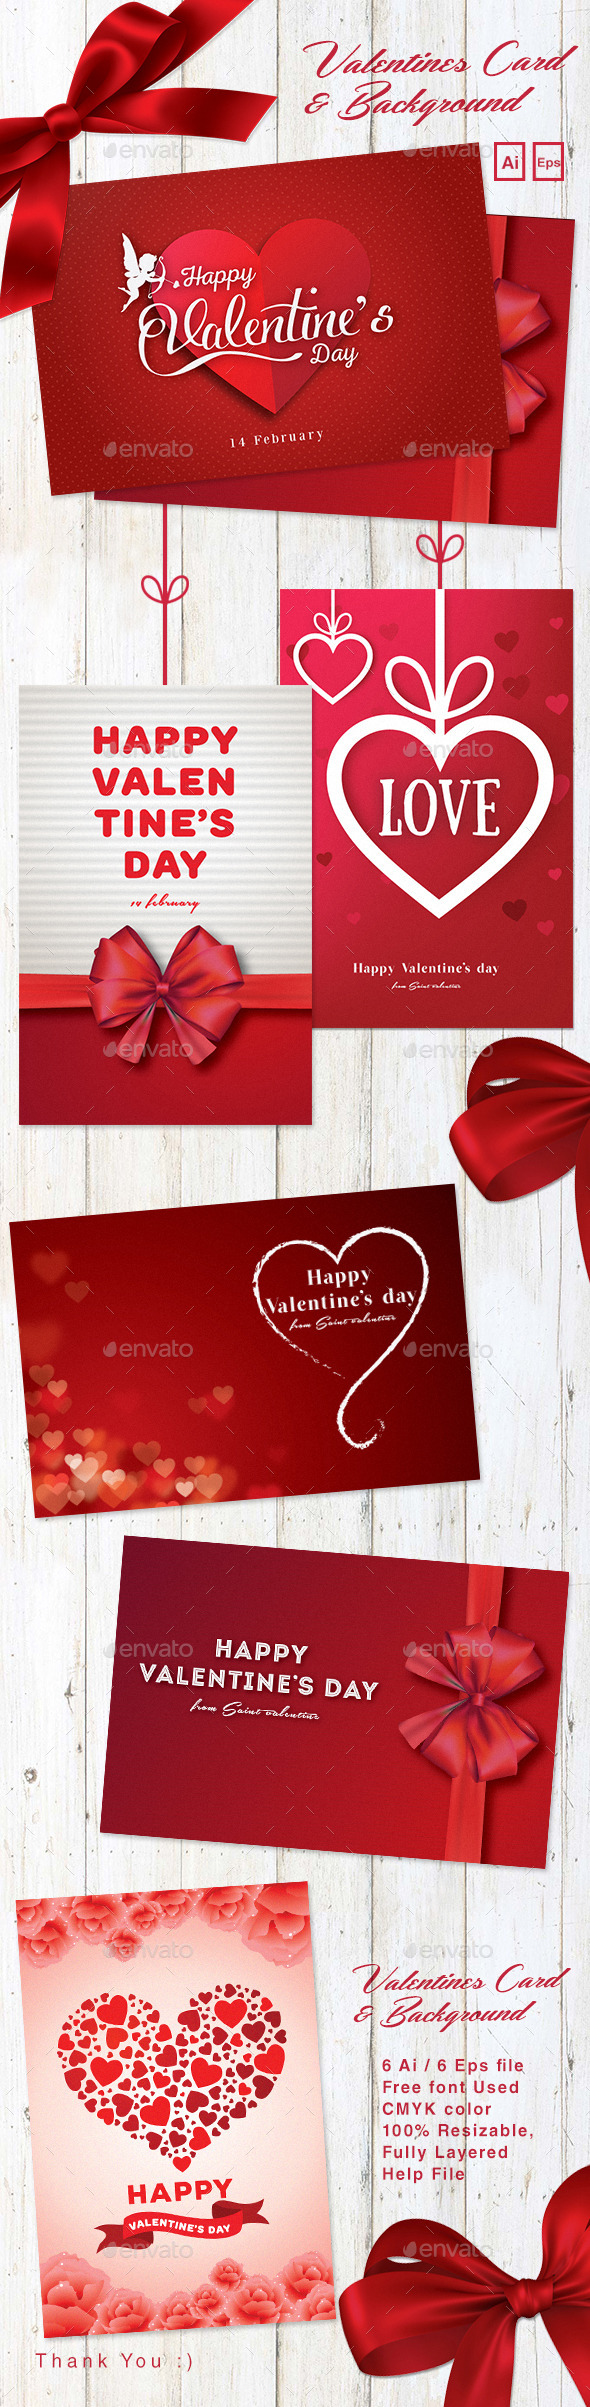 Valentines Card & Background - Holiday Greeting Cards